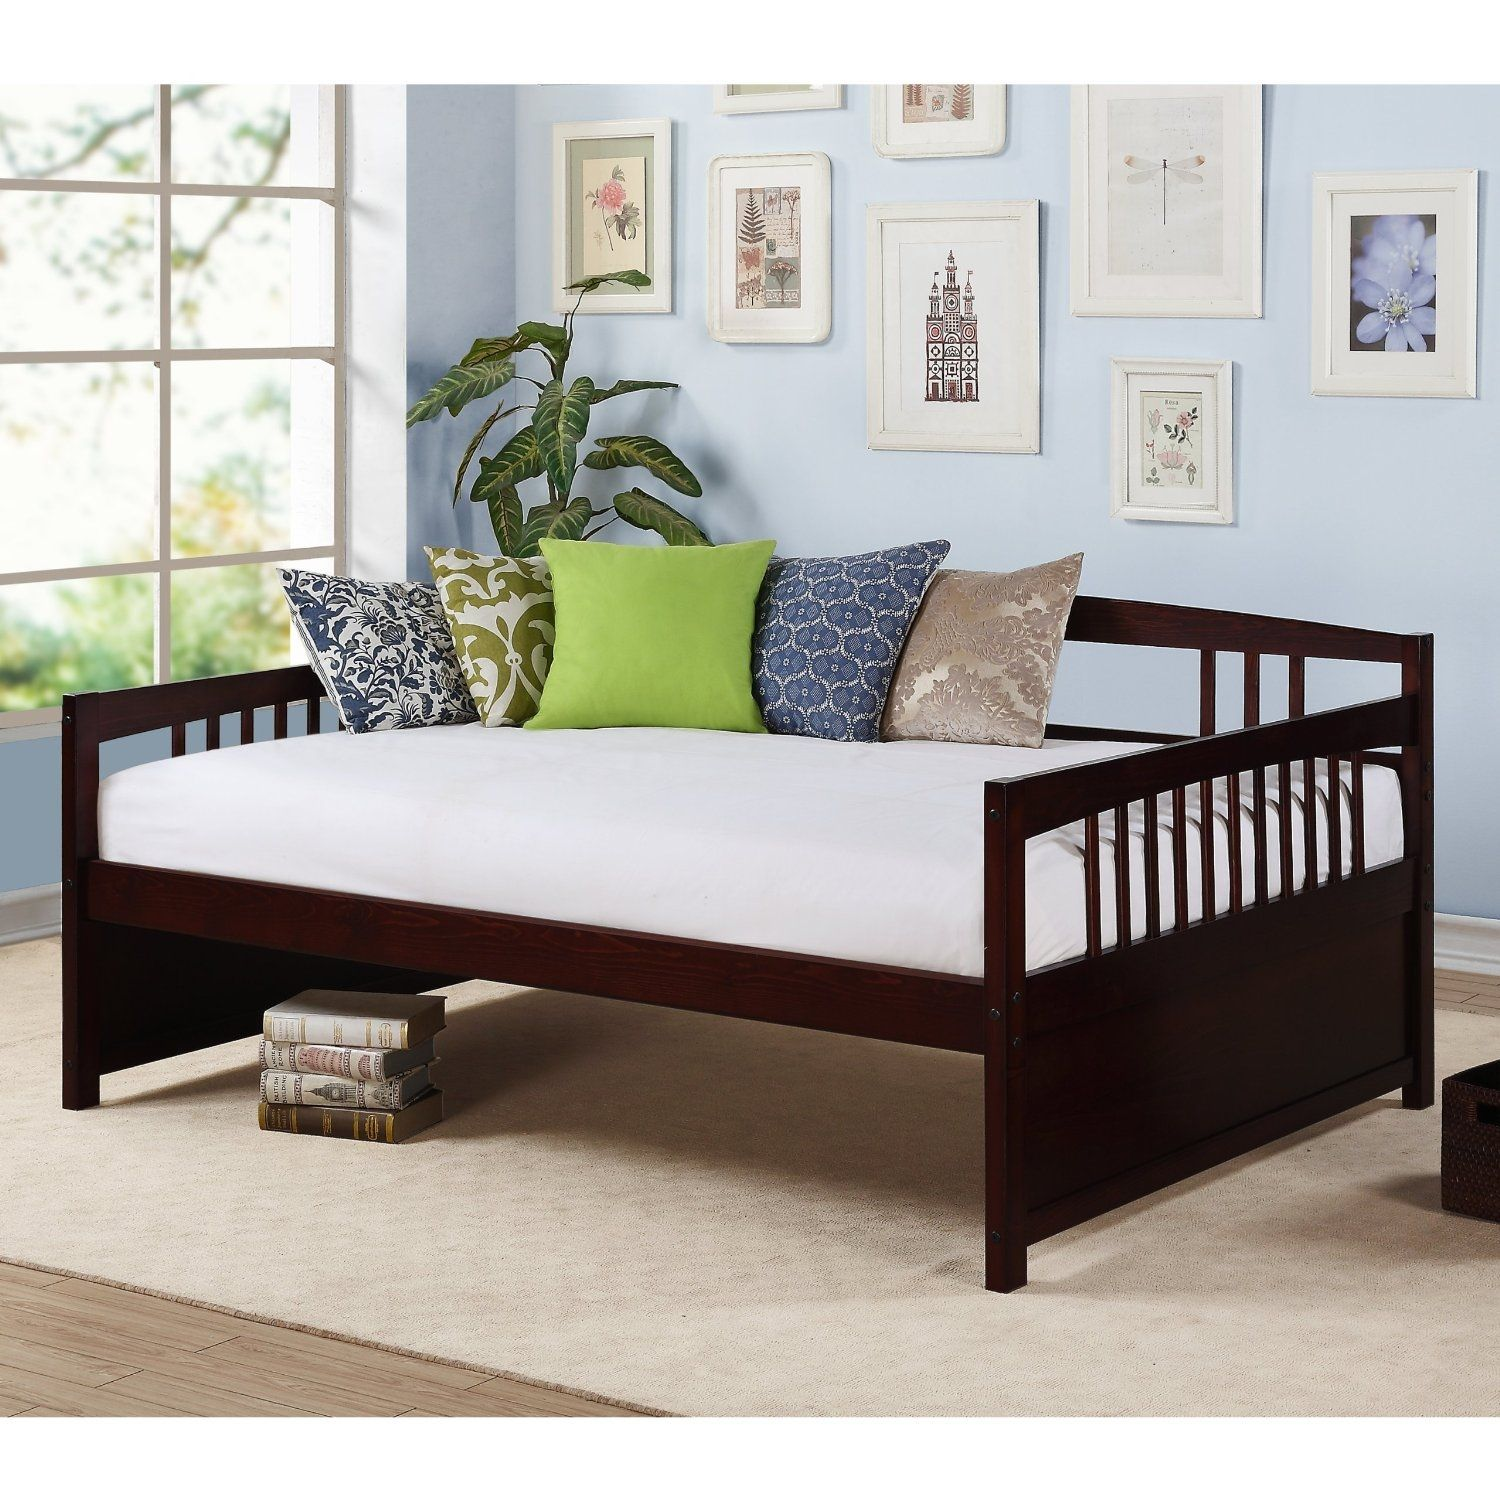 Simple Wooden Full Size Daybed Frame Design